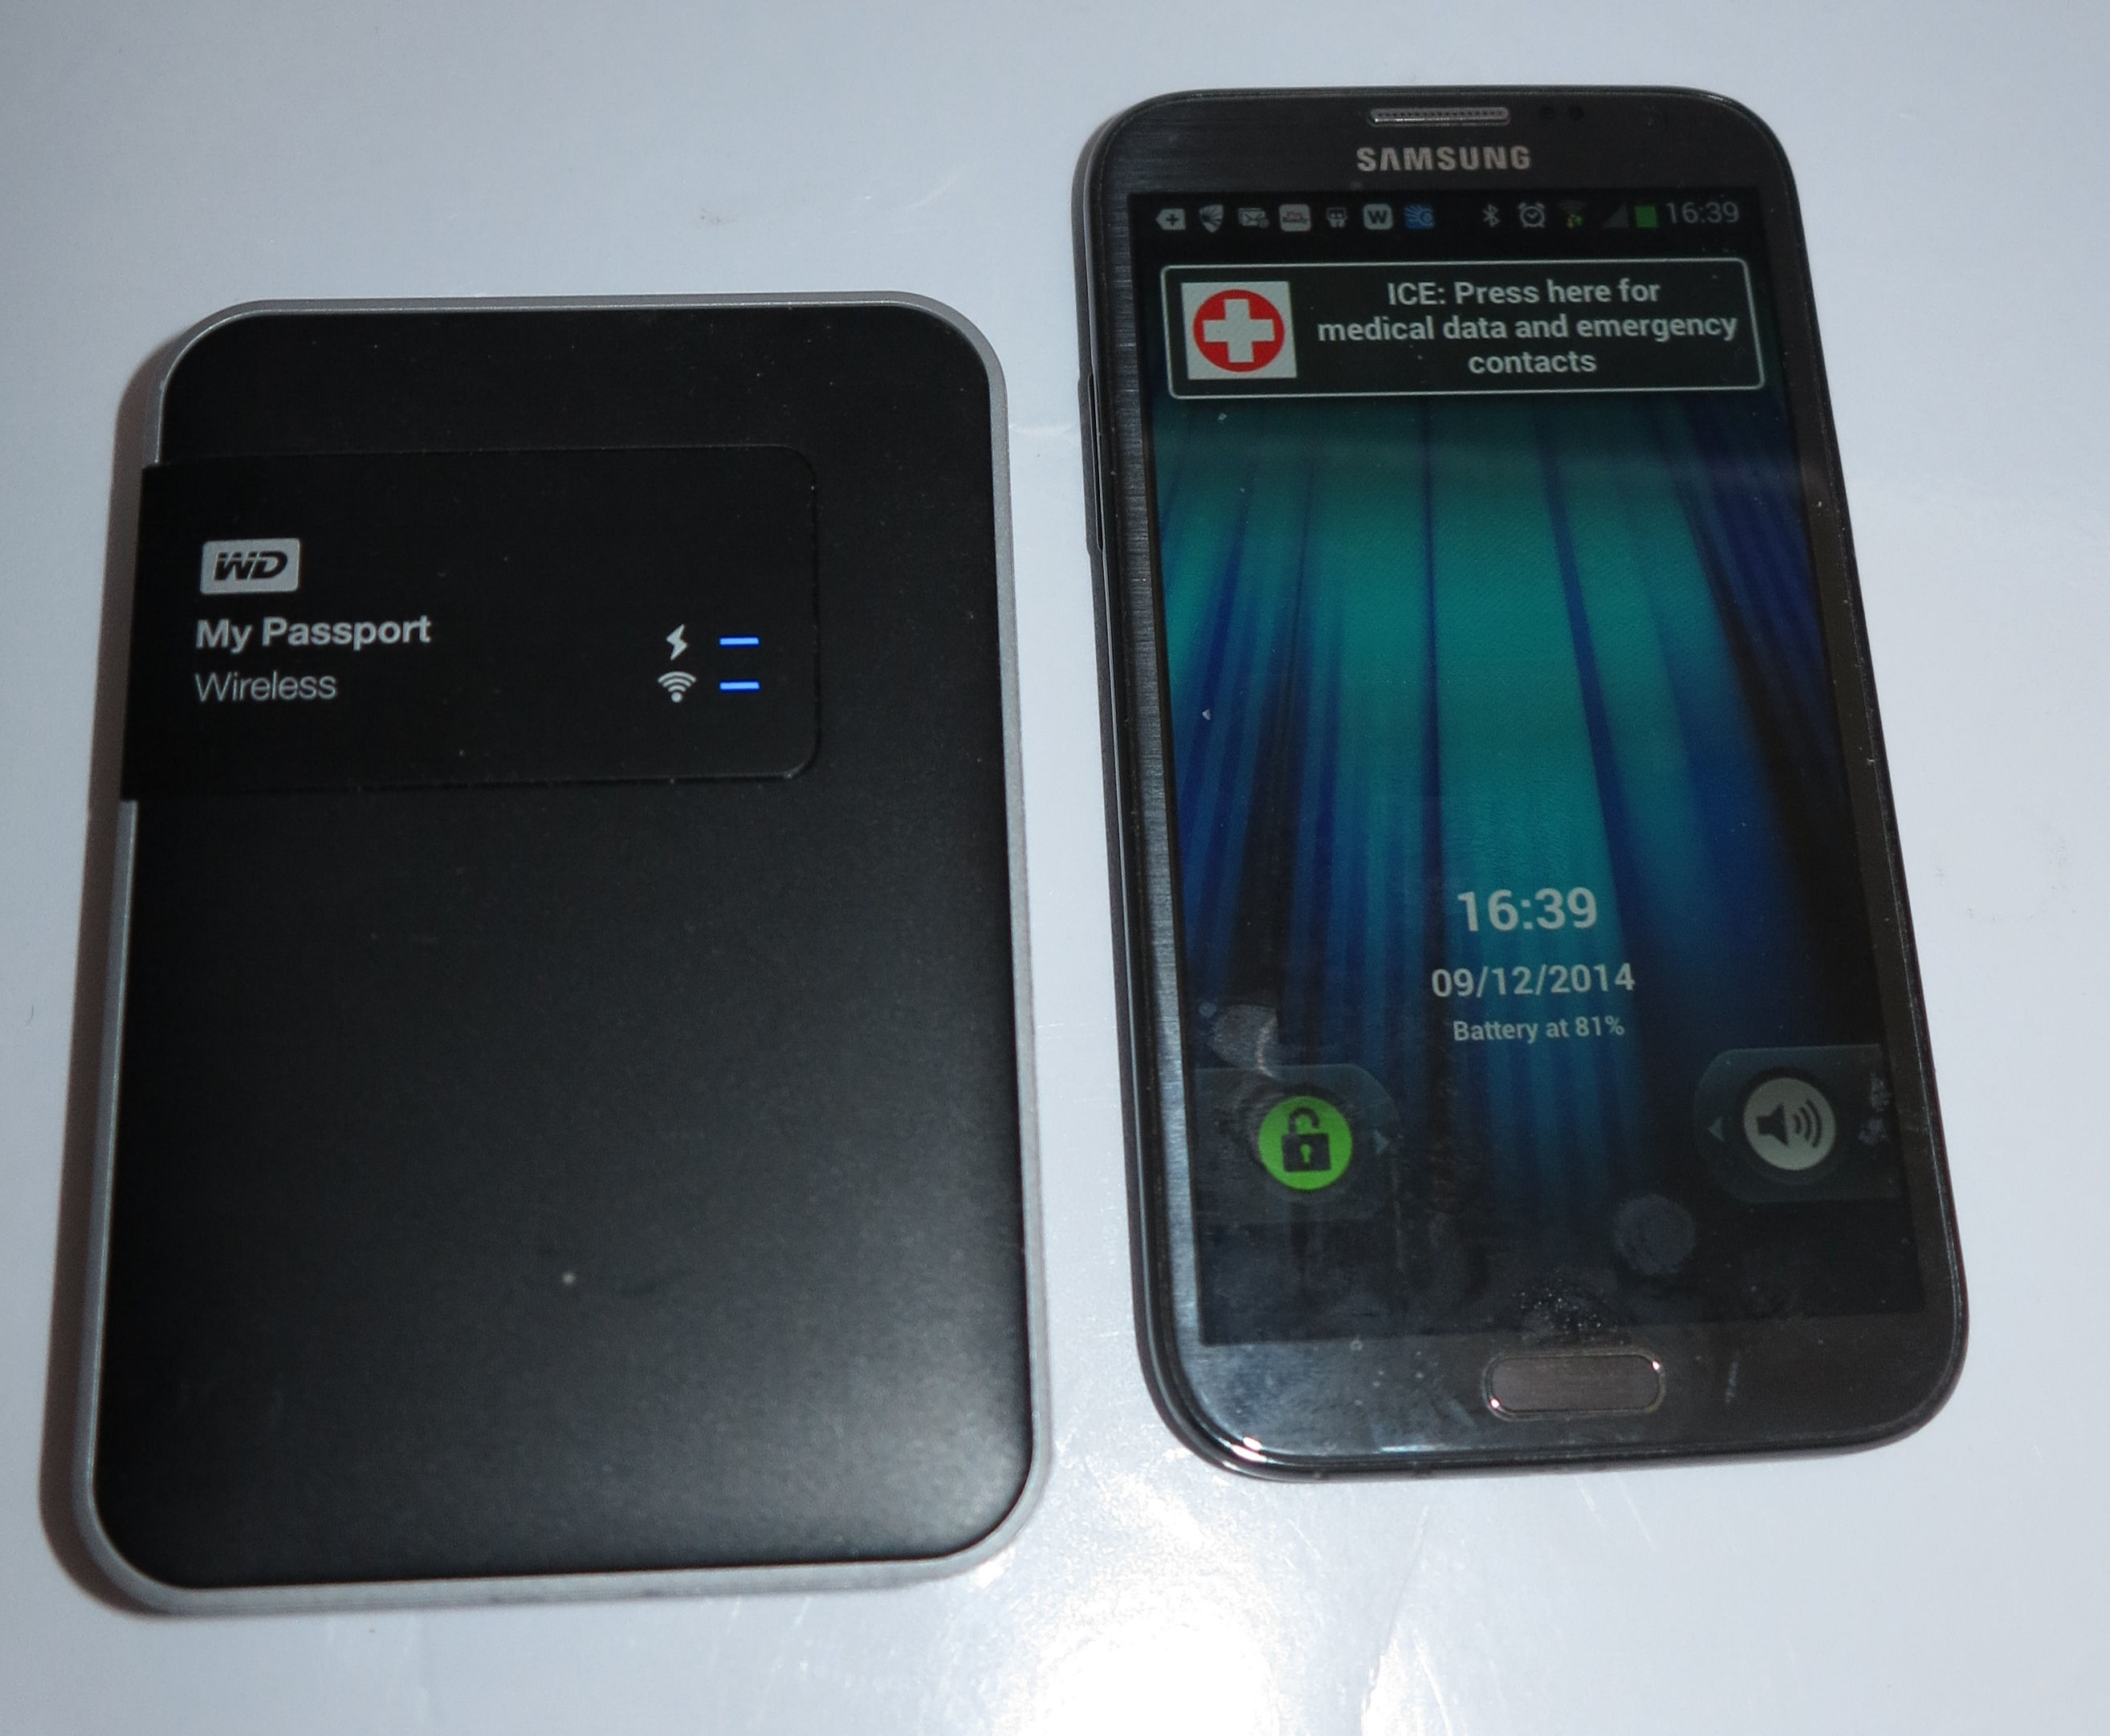 WD MyPassport Wireless mobile NAS beside Samsung Galaxy Note 2 smartphone